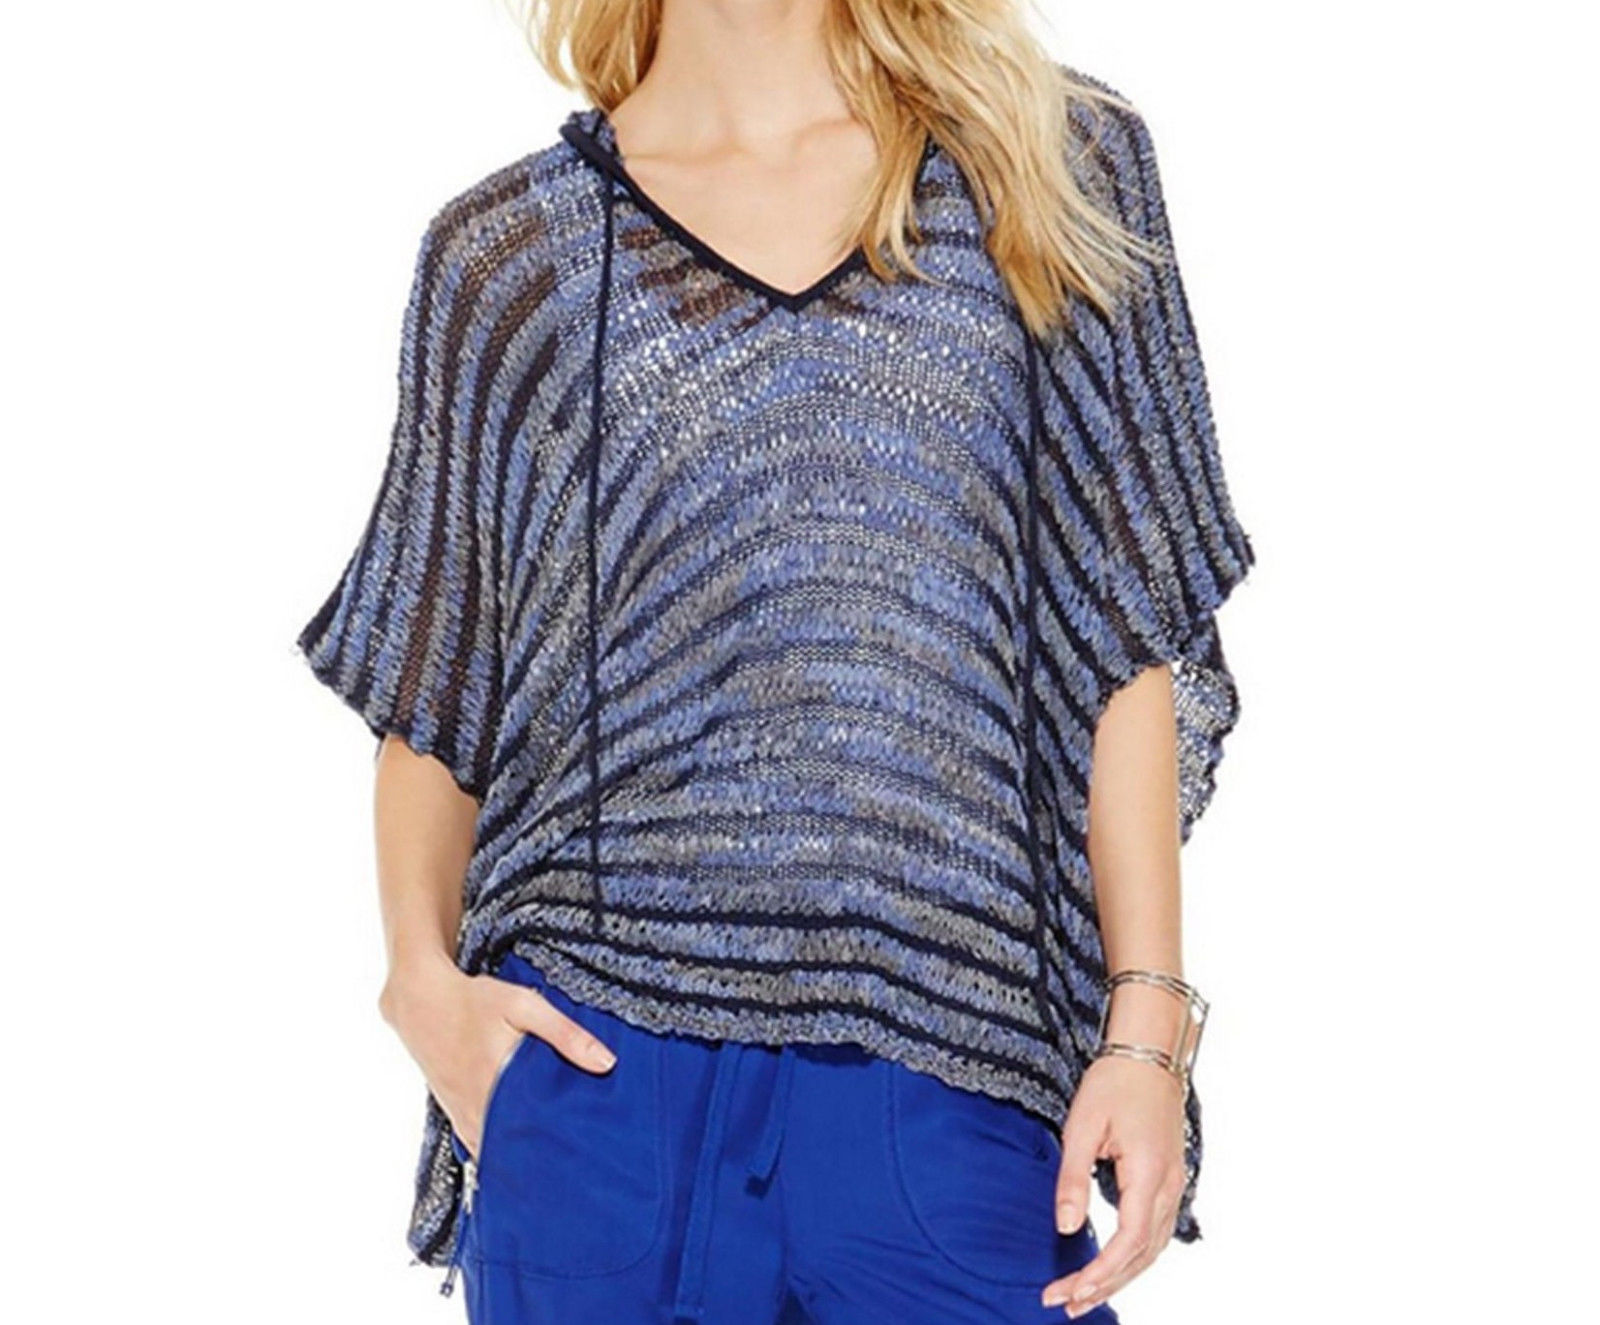 INC International Concepts Women Knit Hooded Poncho Top Blue S/M